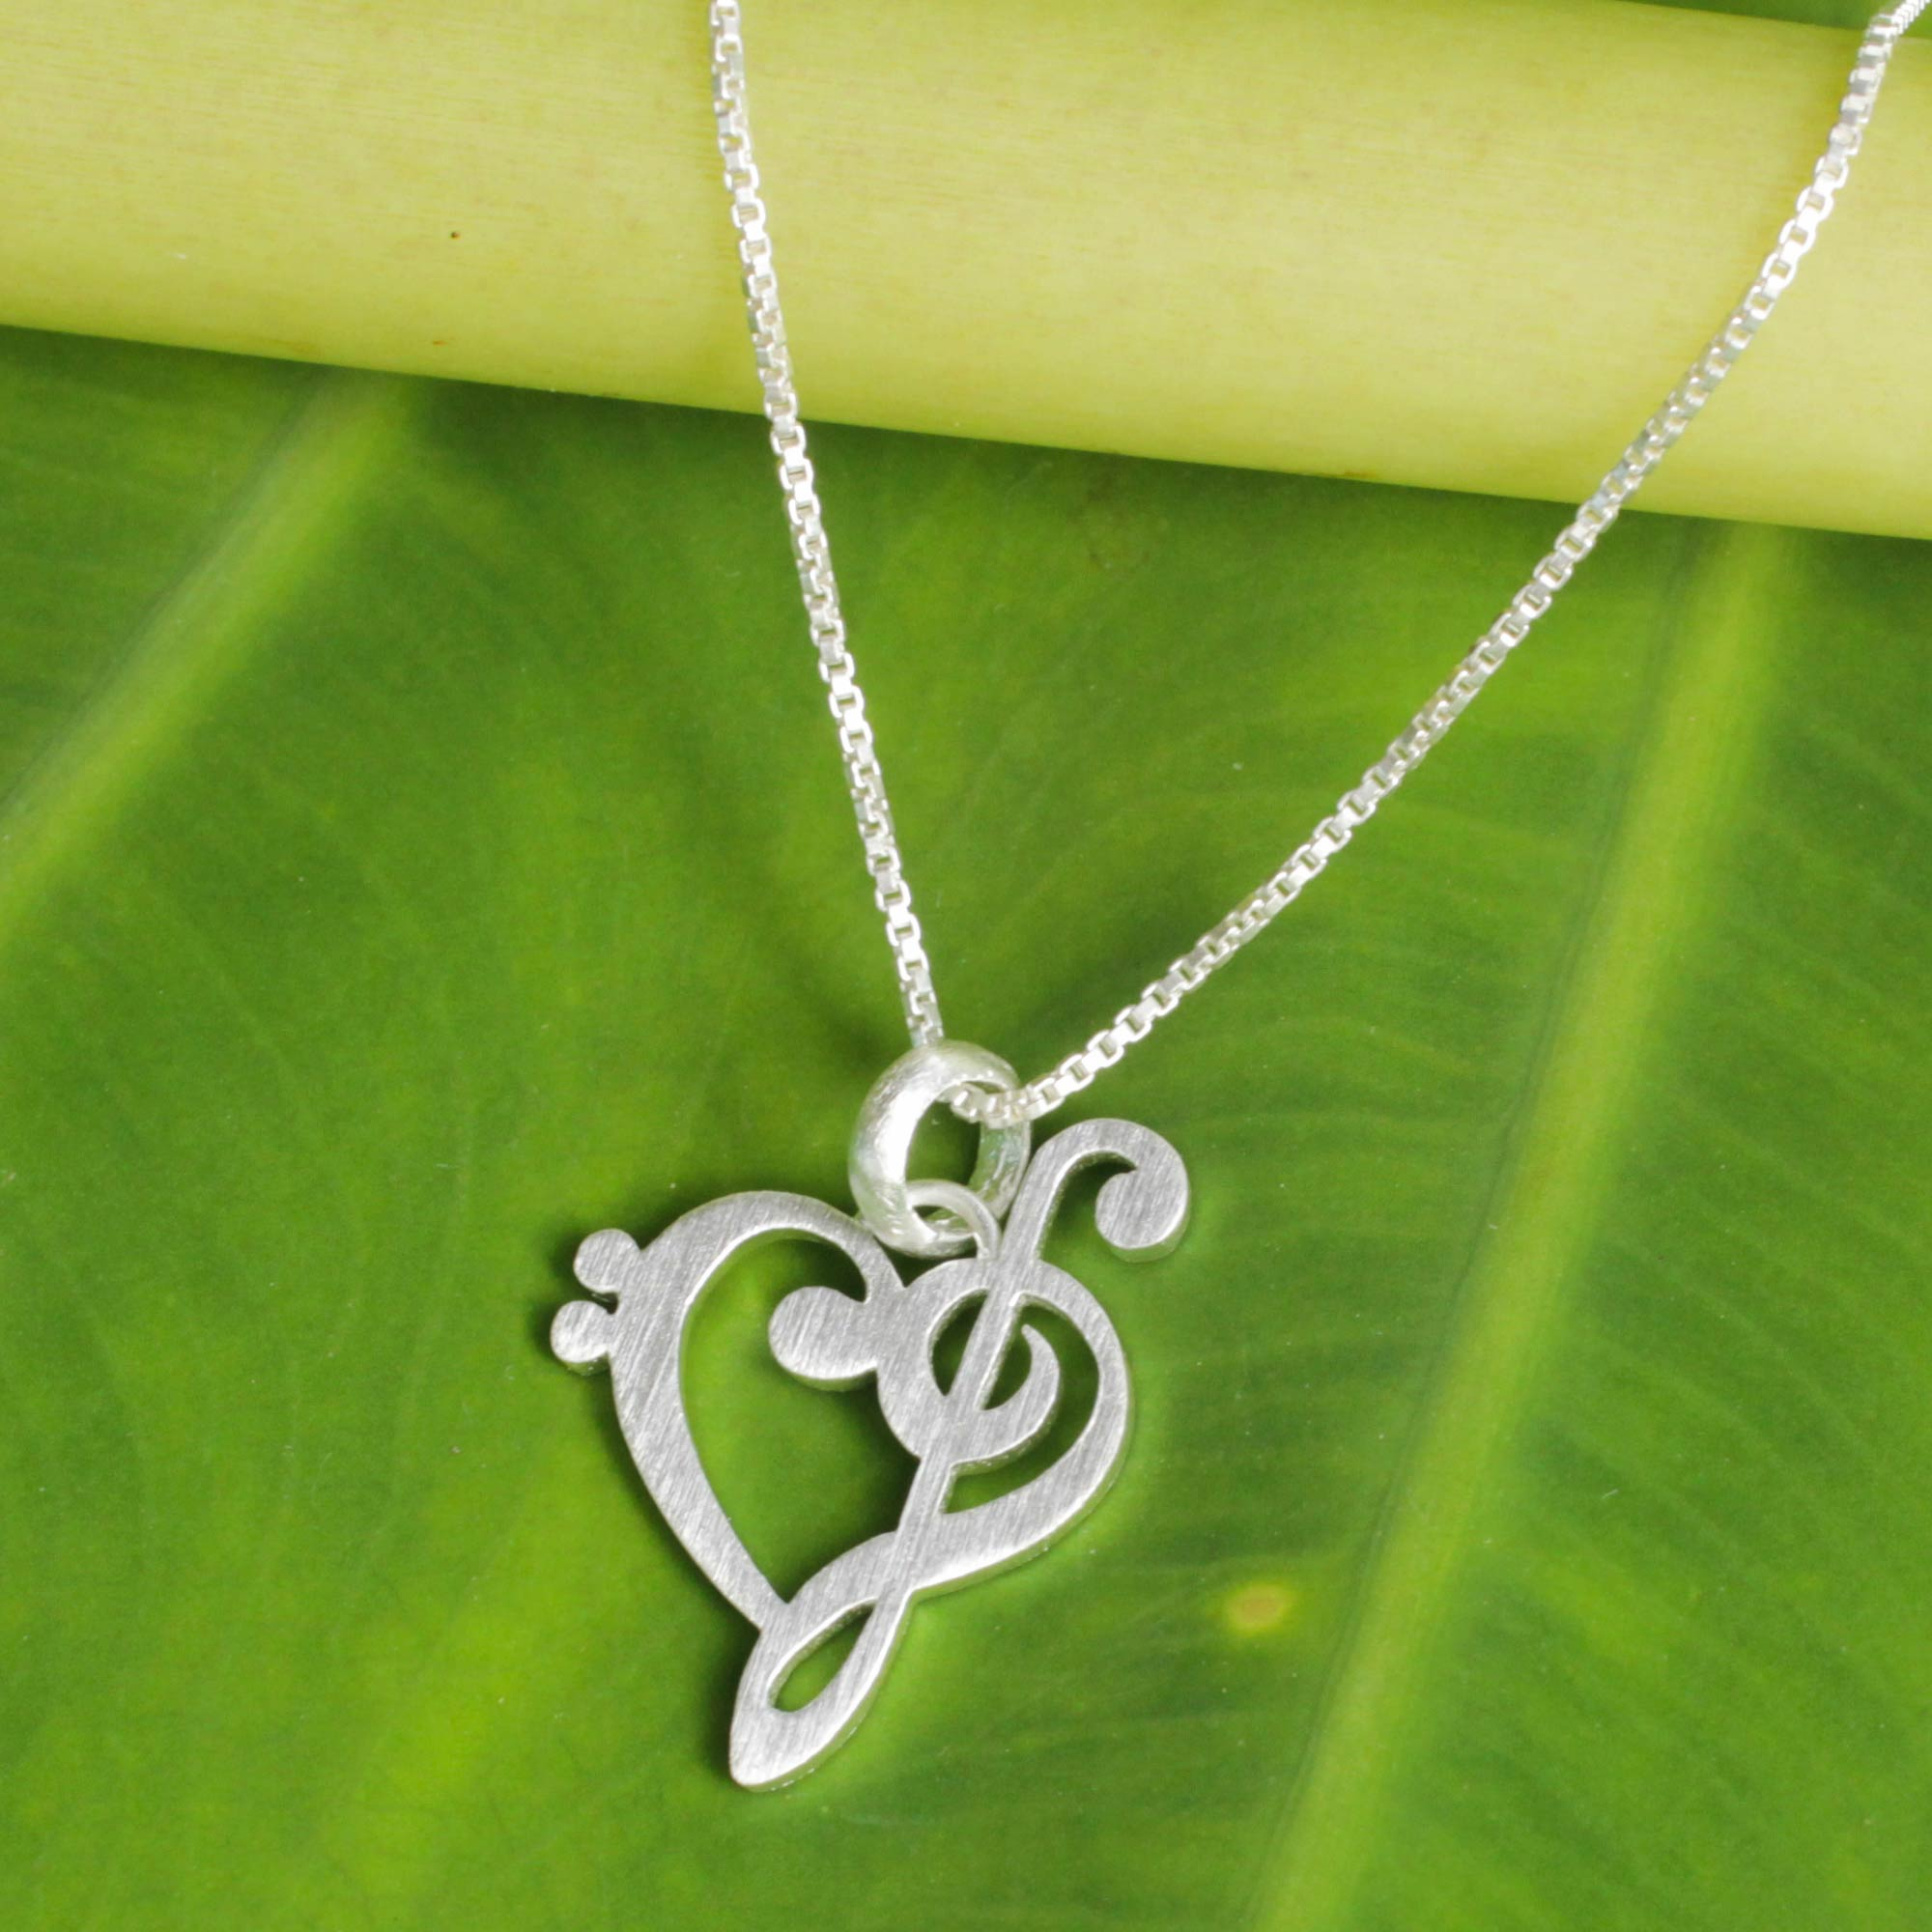 Unicef Market Sterling Silver Musical Note Necklace Song Of The